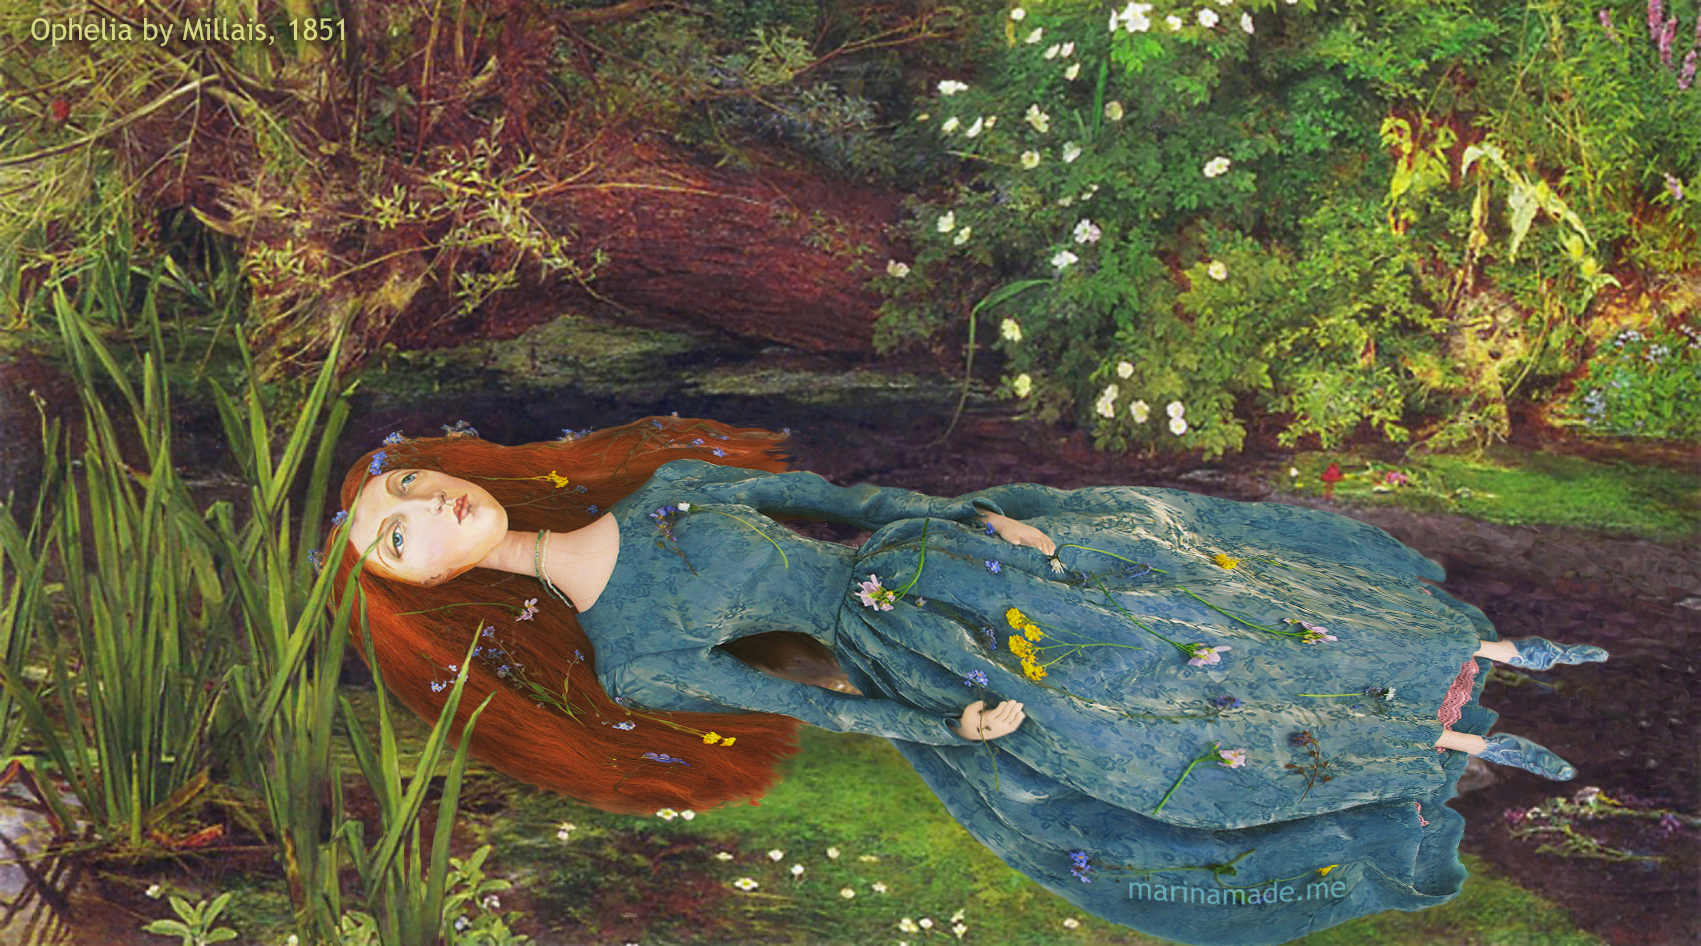 lizzie-muse-as-ophelia-wmby-millais-1851